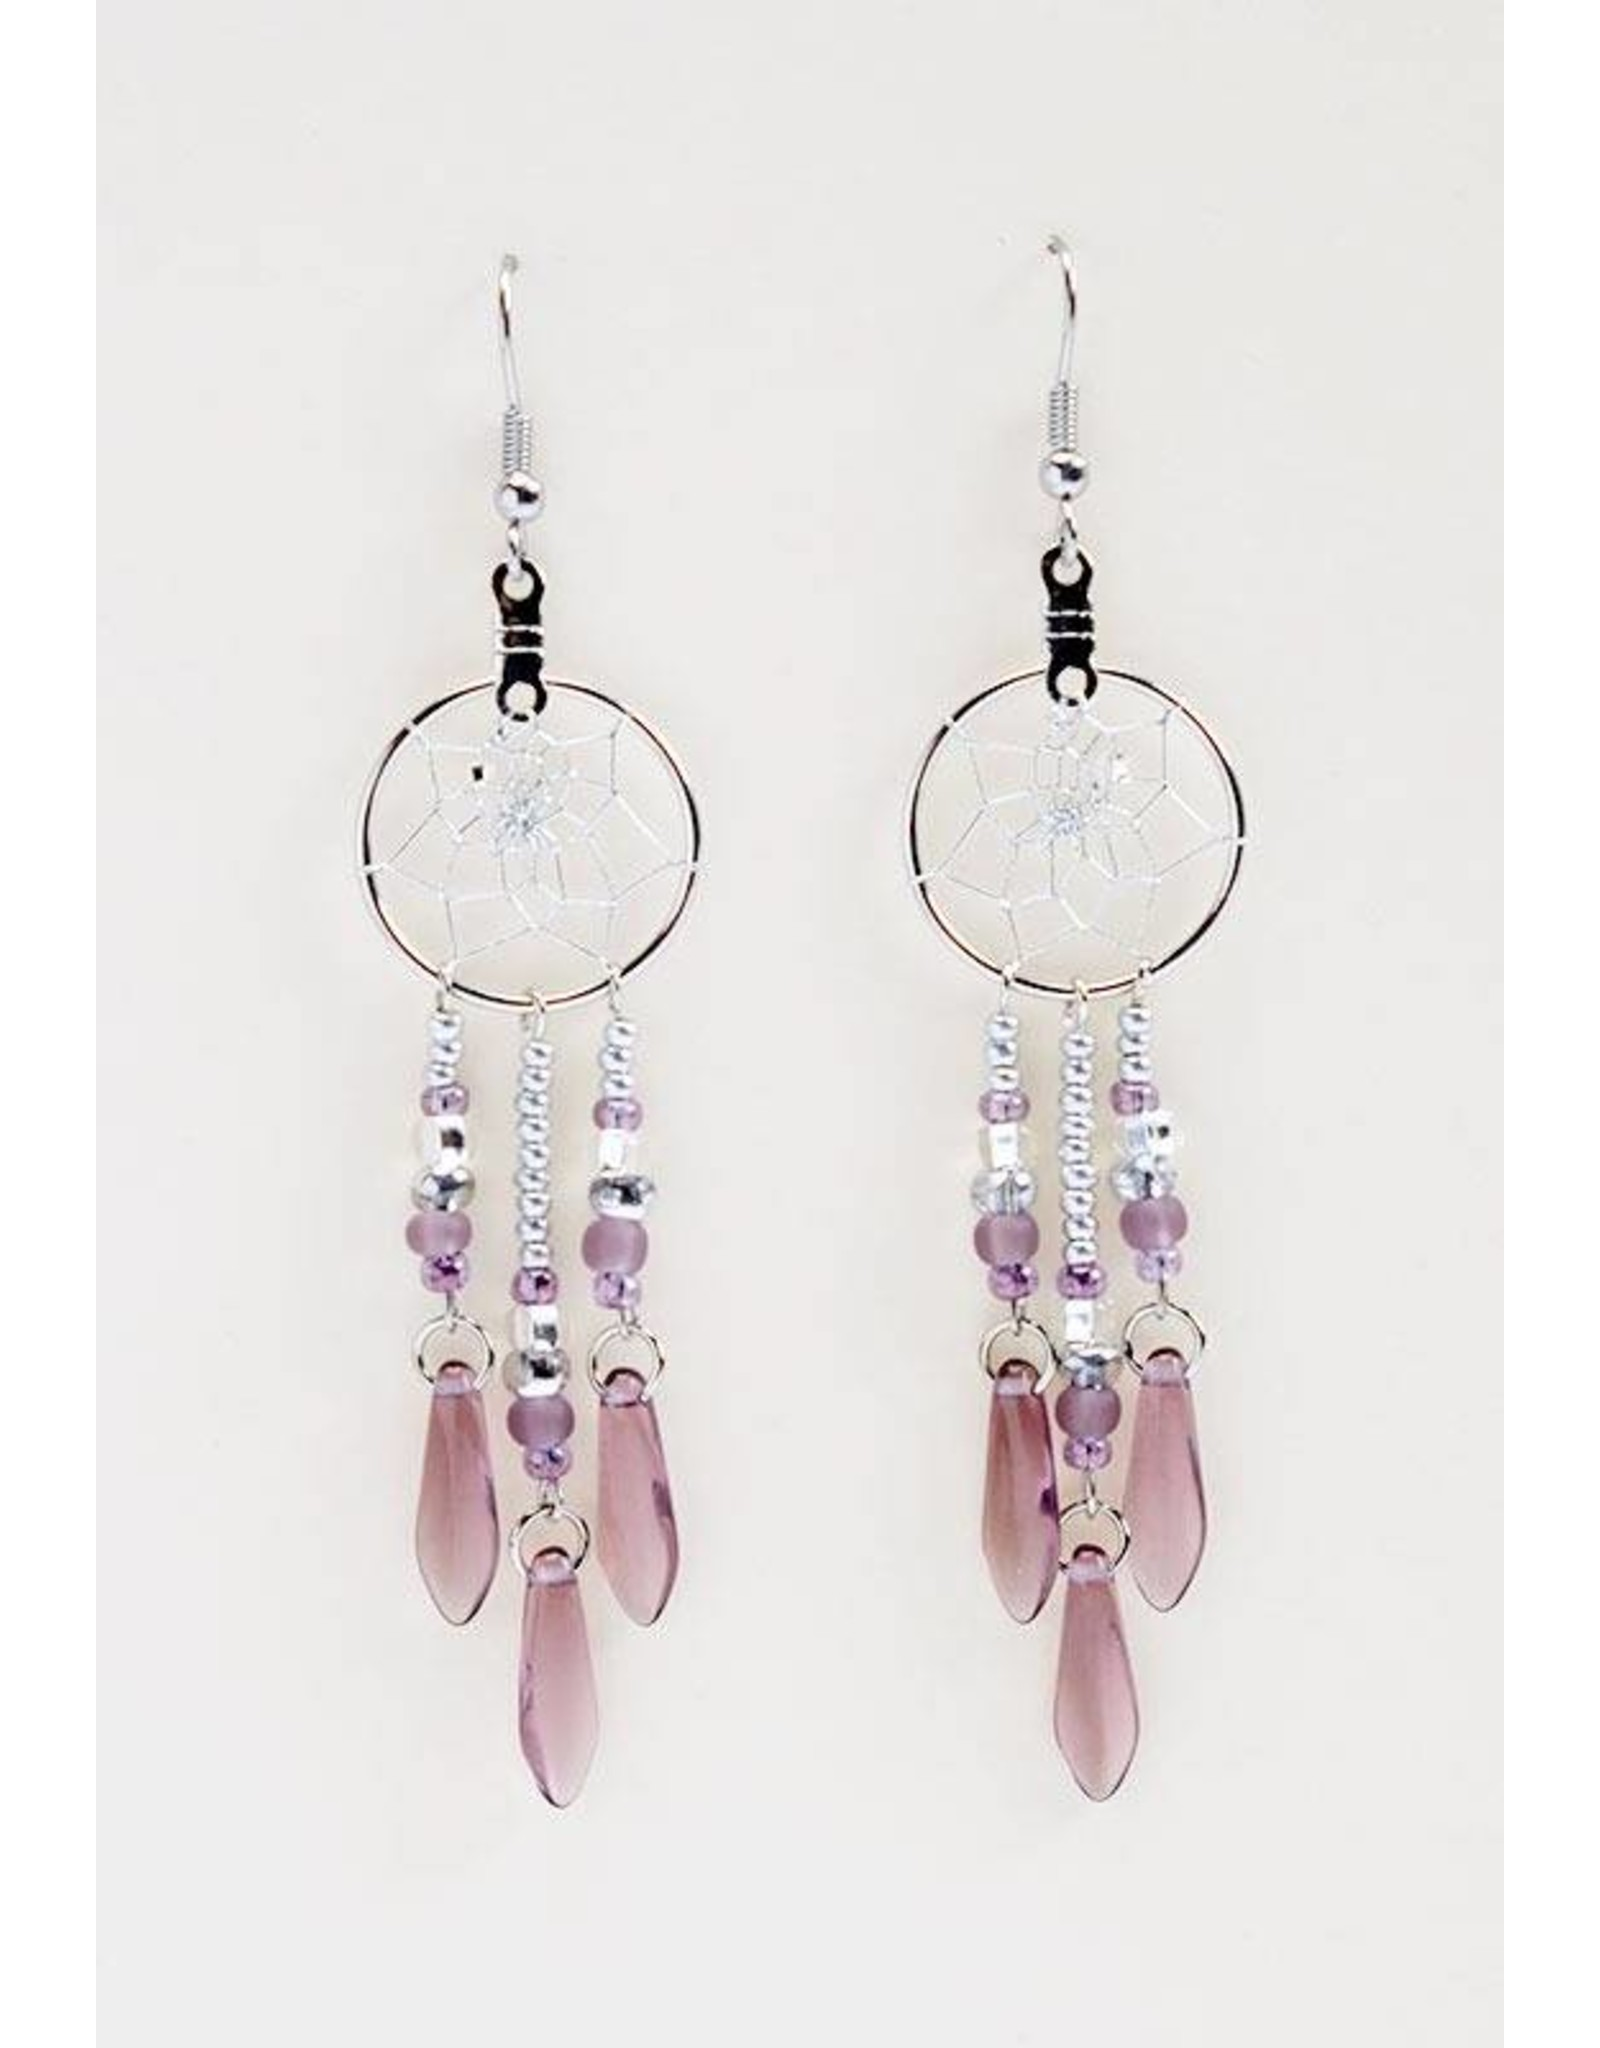 """.75"""" Dream Catcher Earrings with amethyst glass beads"""